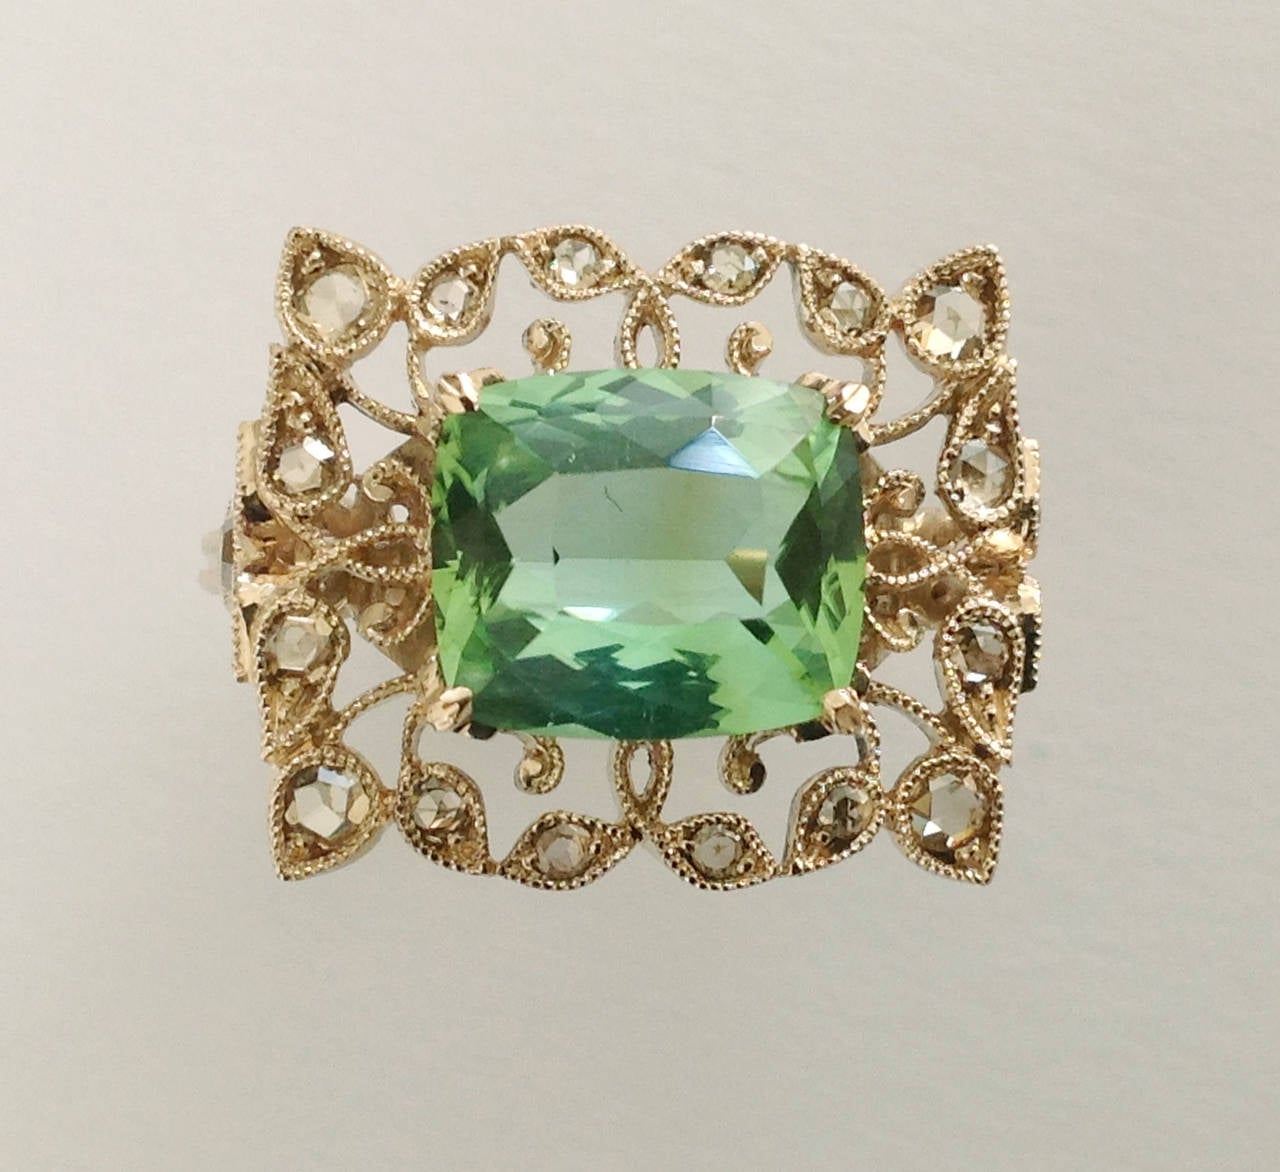 Dalben Green Tourmaline Rose Cut Diamond Gold Fashion Ring In As New Condition For Sale In Como, IT